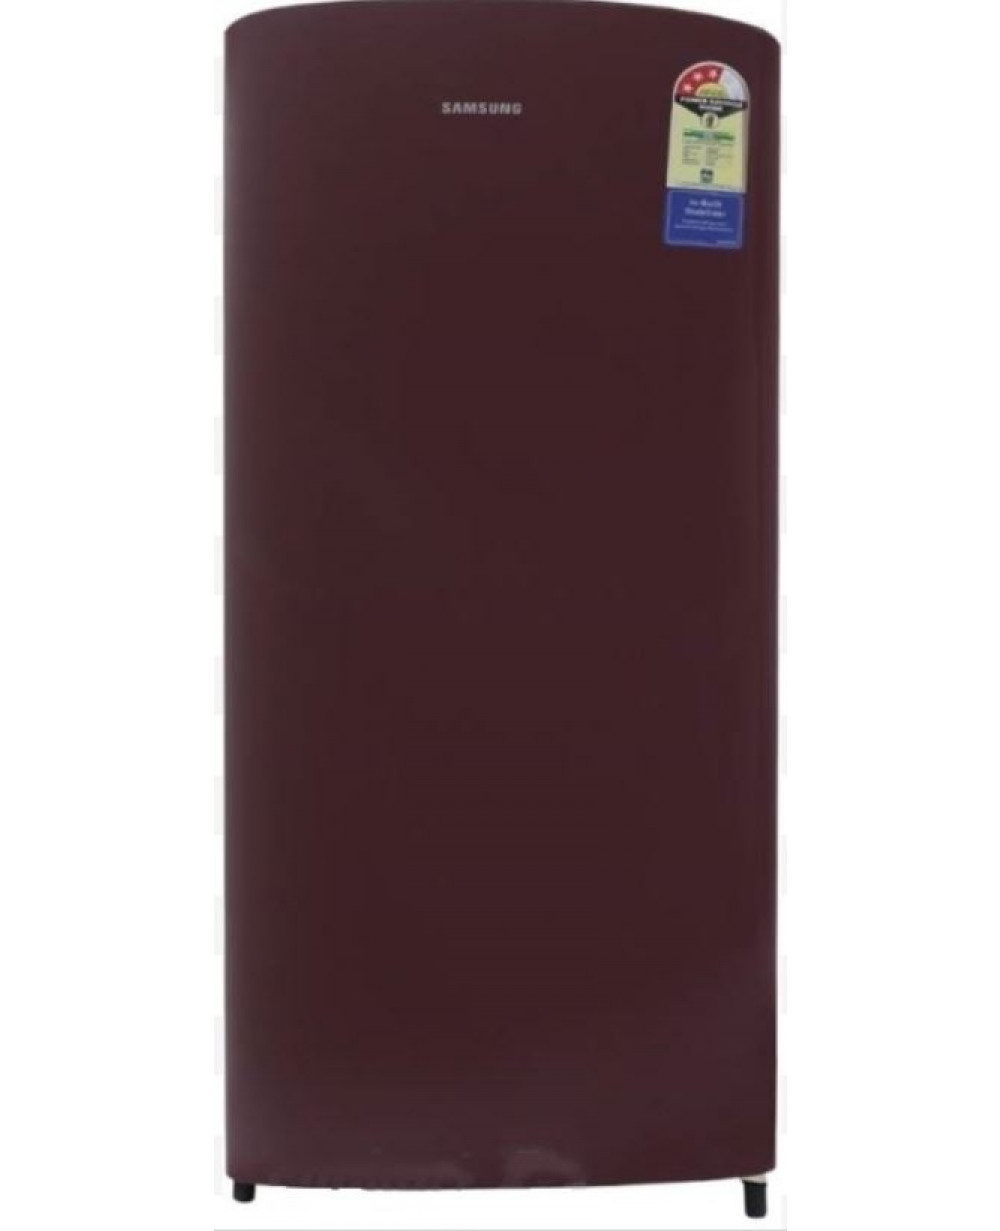 samsung-refrigerator-without-handle-192ltr-rr19m20a2rh